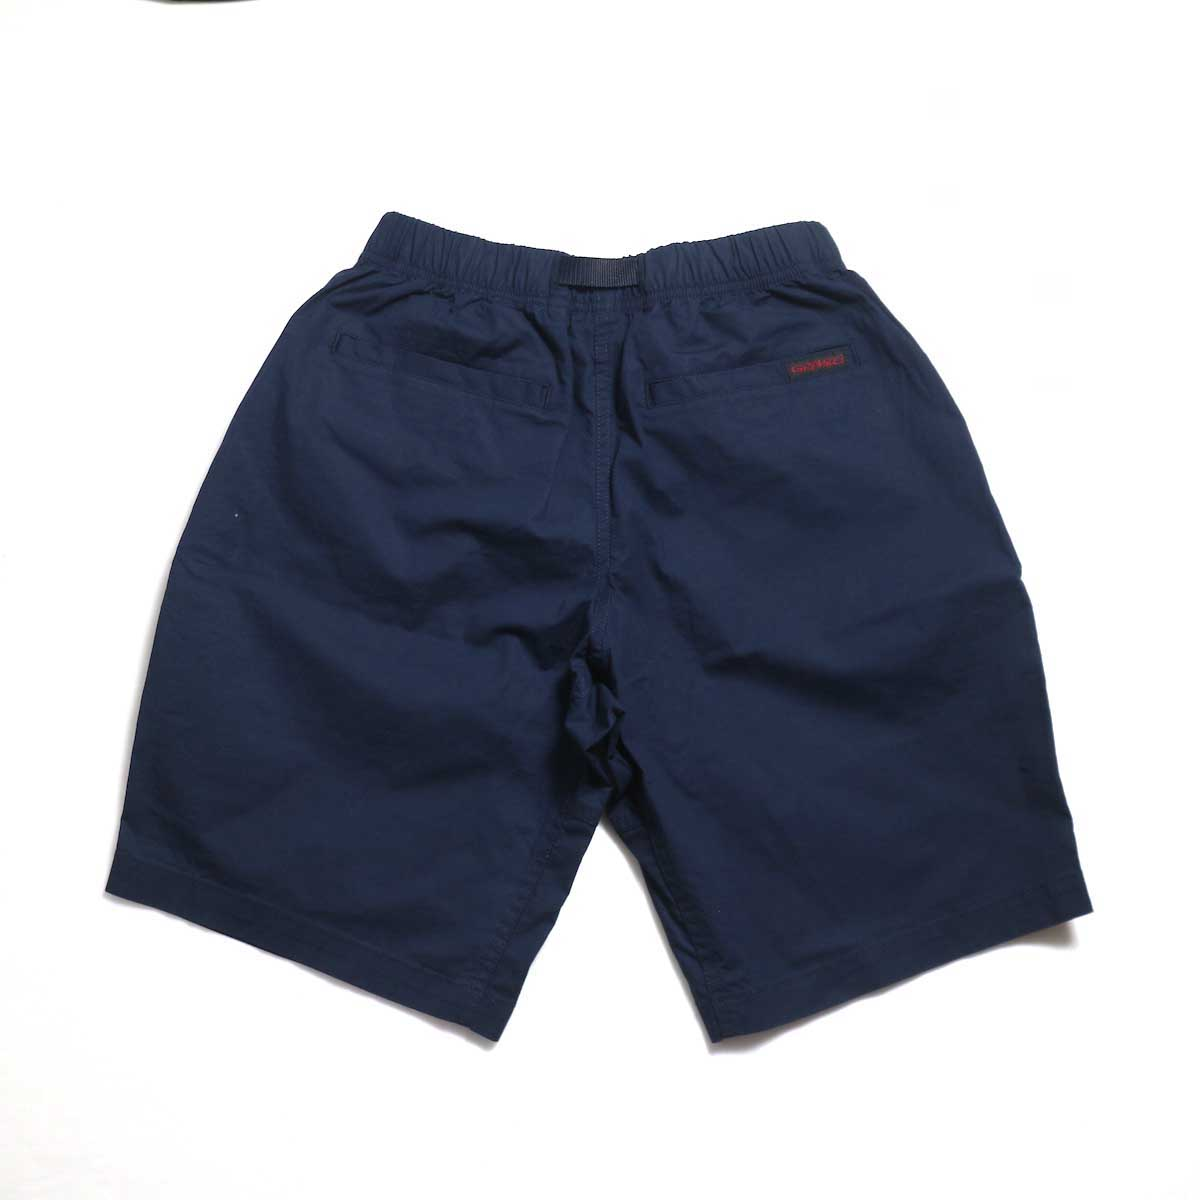 GRAMICCI / WEATHER ST-SHORTS -Double Navy 背面